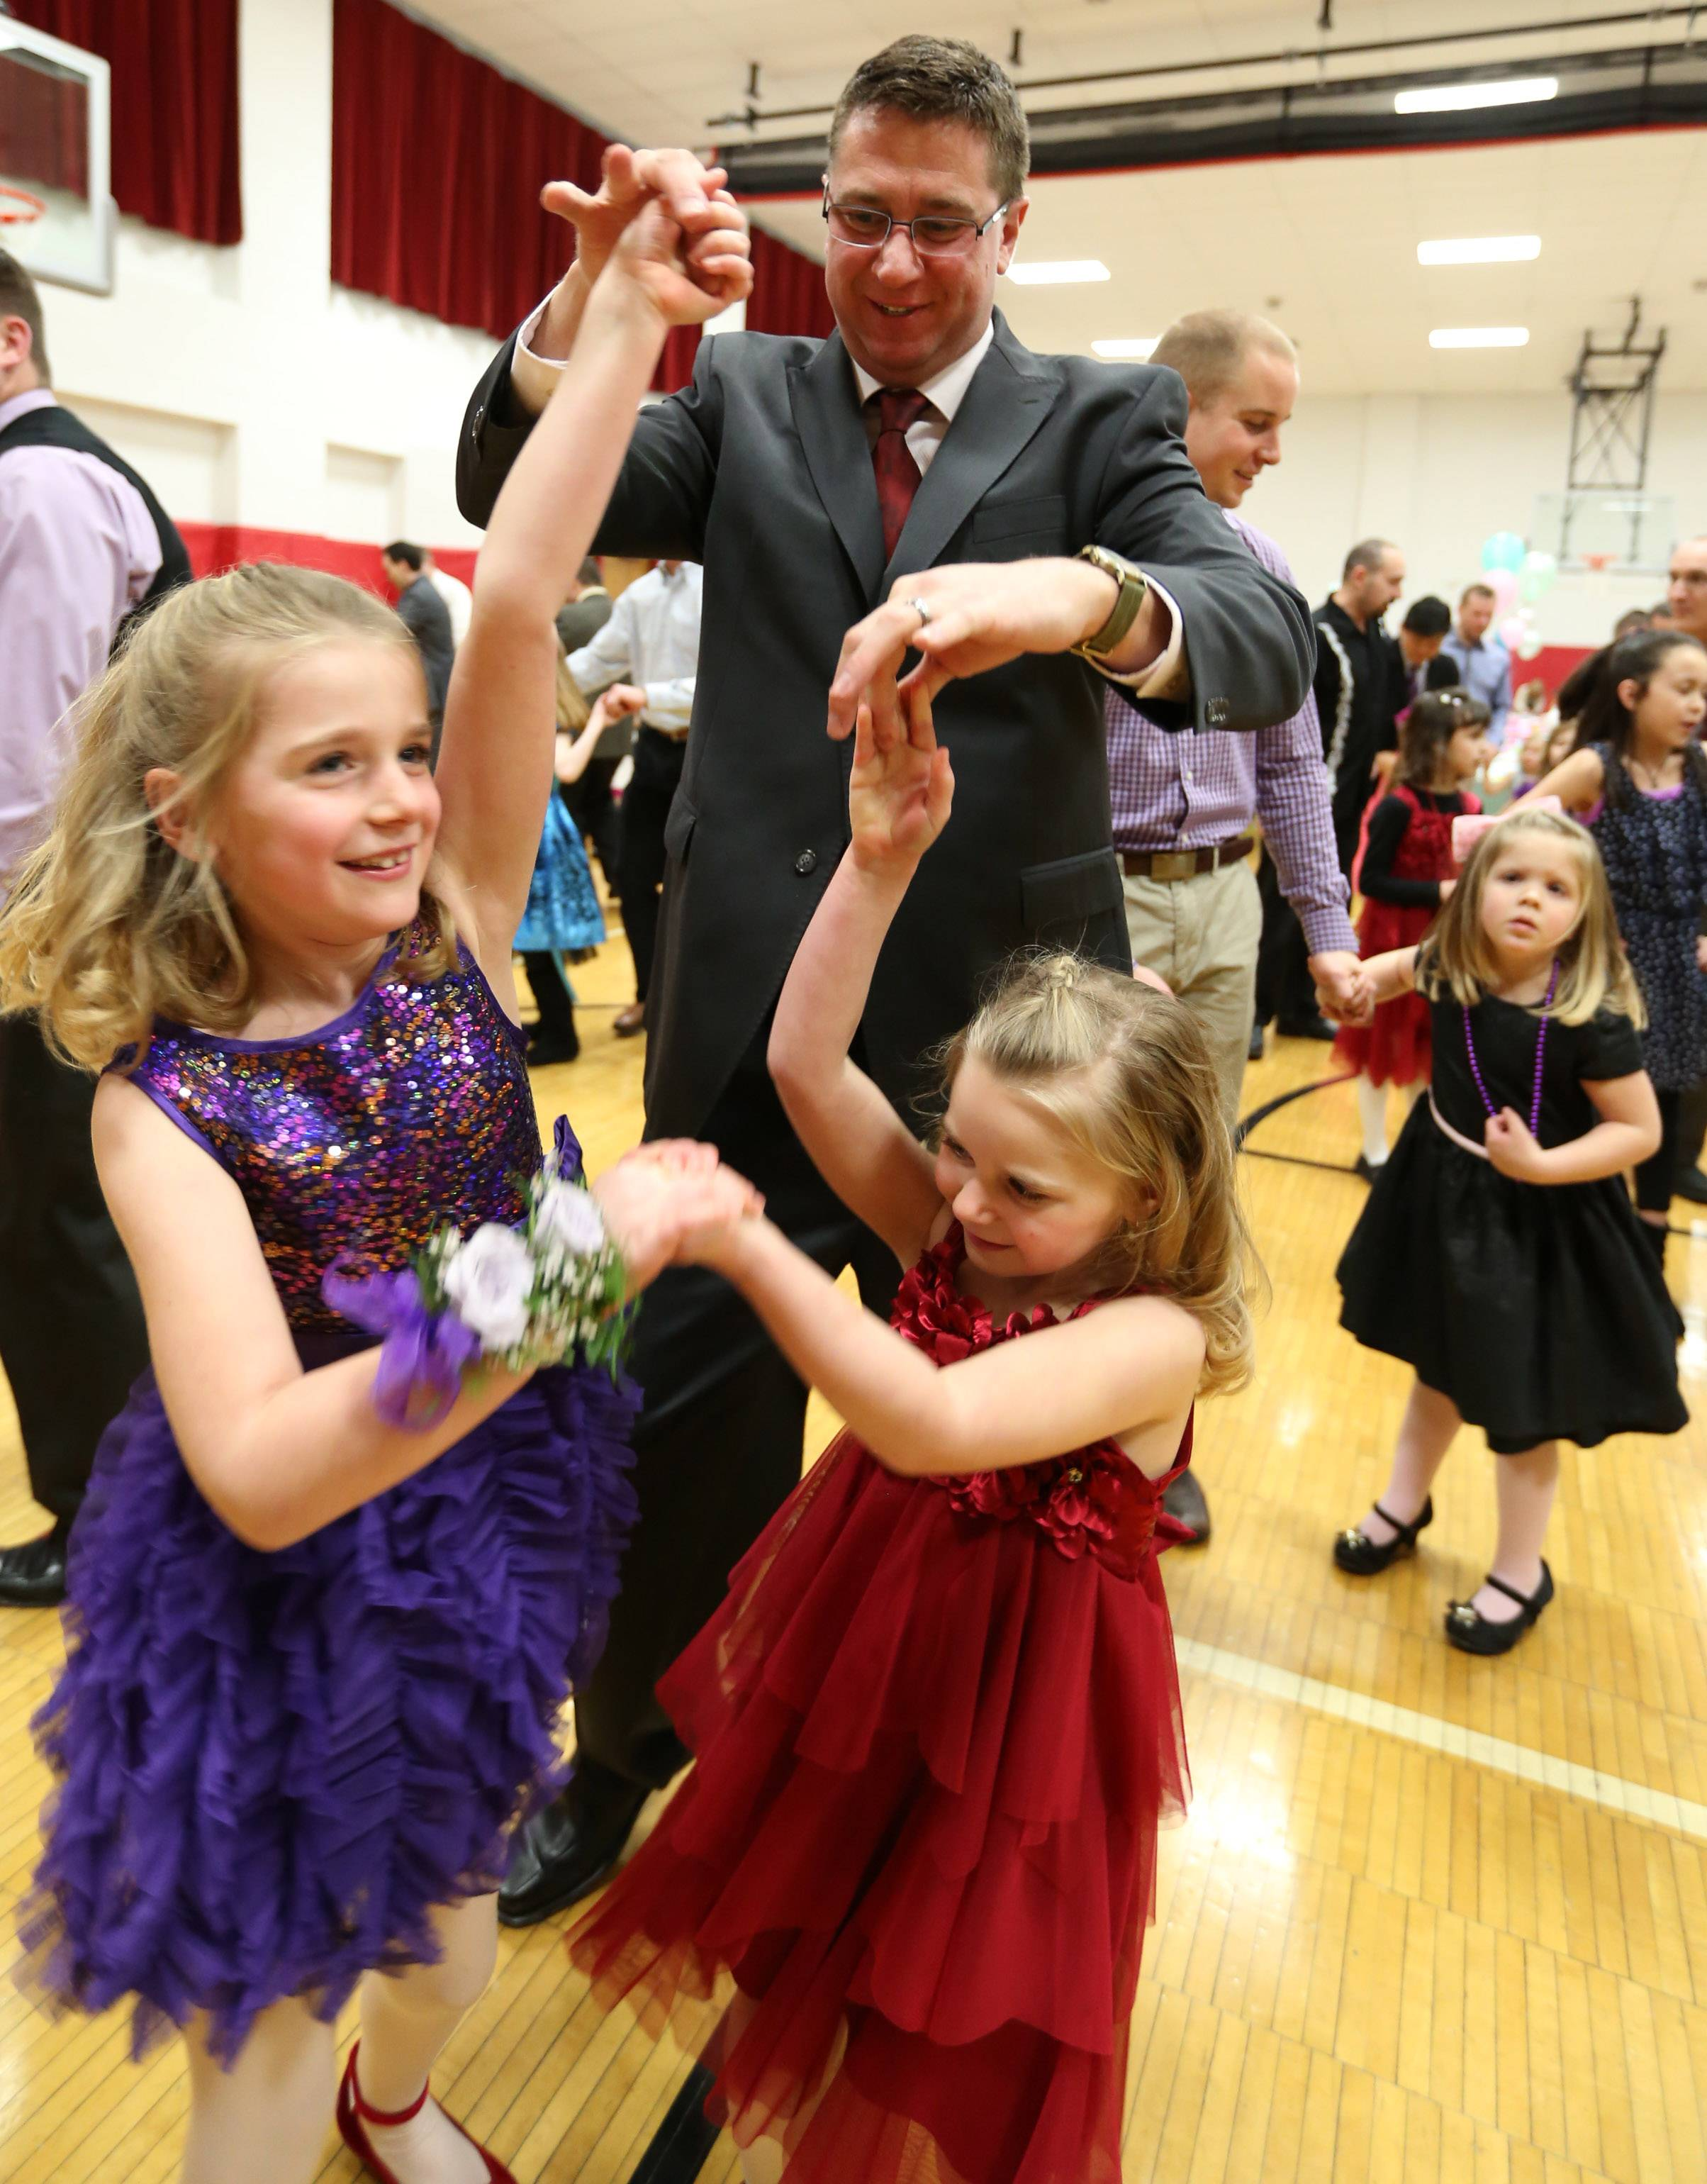 Rob Kaergard of Schaumburg dances with his two daughters Brooke, 7, left, and Kira, 5, at a dad and daughter dance at the Community Recreation Center on Saturday night in Schaumburg.